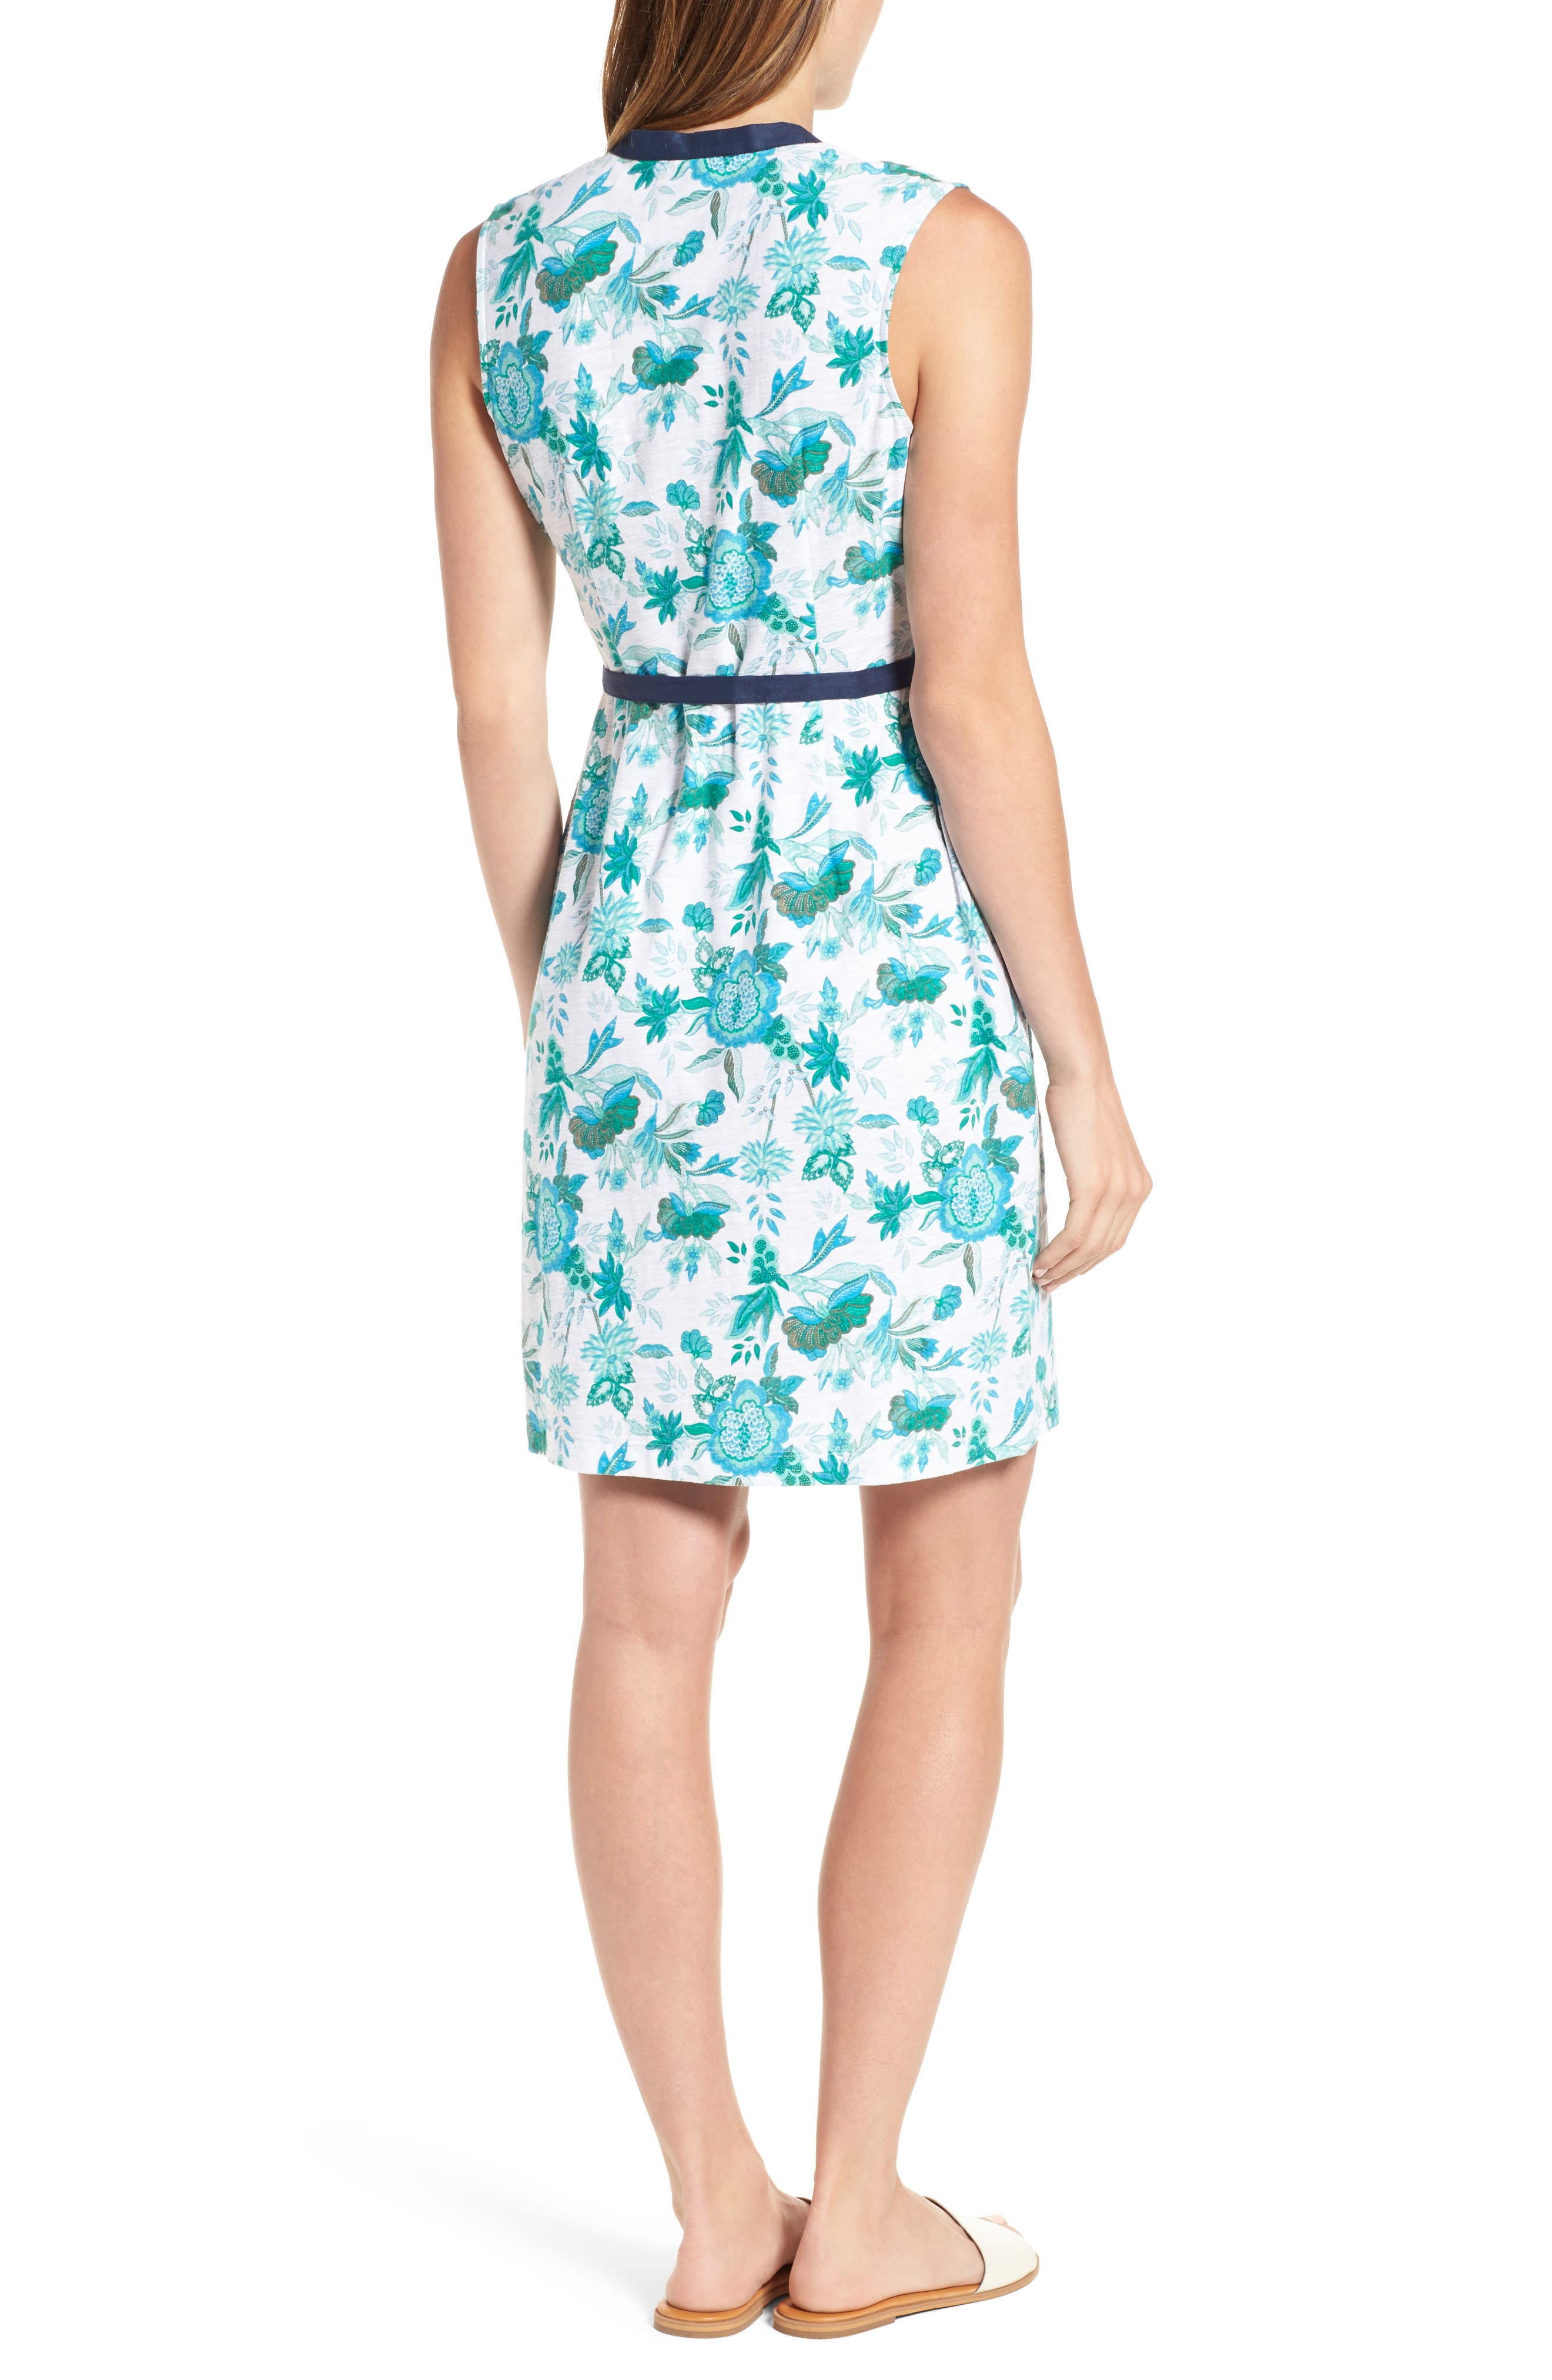 Naxos Blooms Short Jersey Dress,                             Alternate thumbnail 2, color,                             300